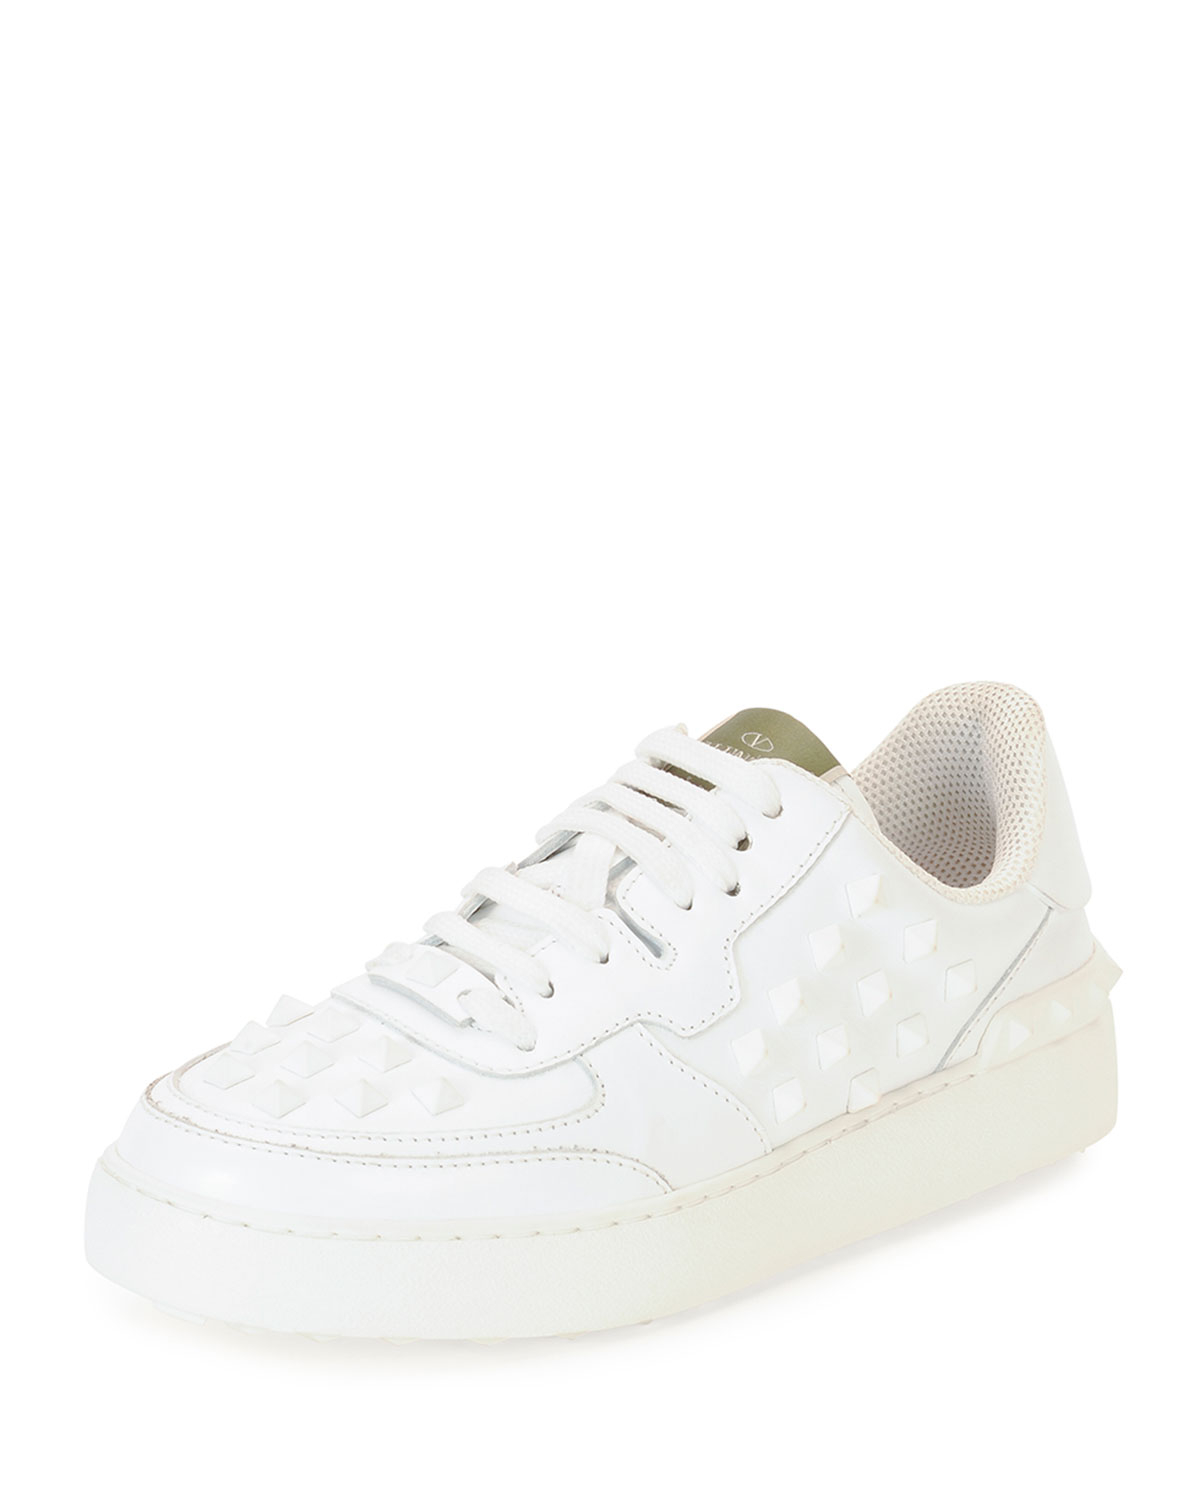 Valentino Leather Low-Top Sneakers sale get to buy footlocker finishline sale online with mastercard cheap online new 2015 new online k987OR8p7x